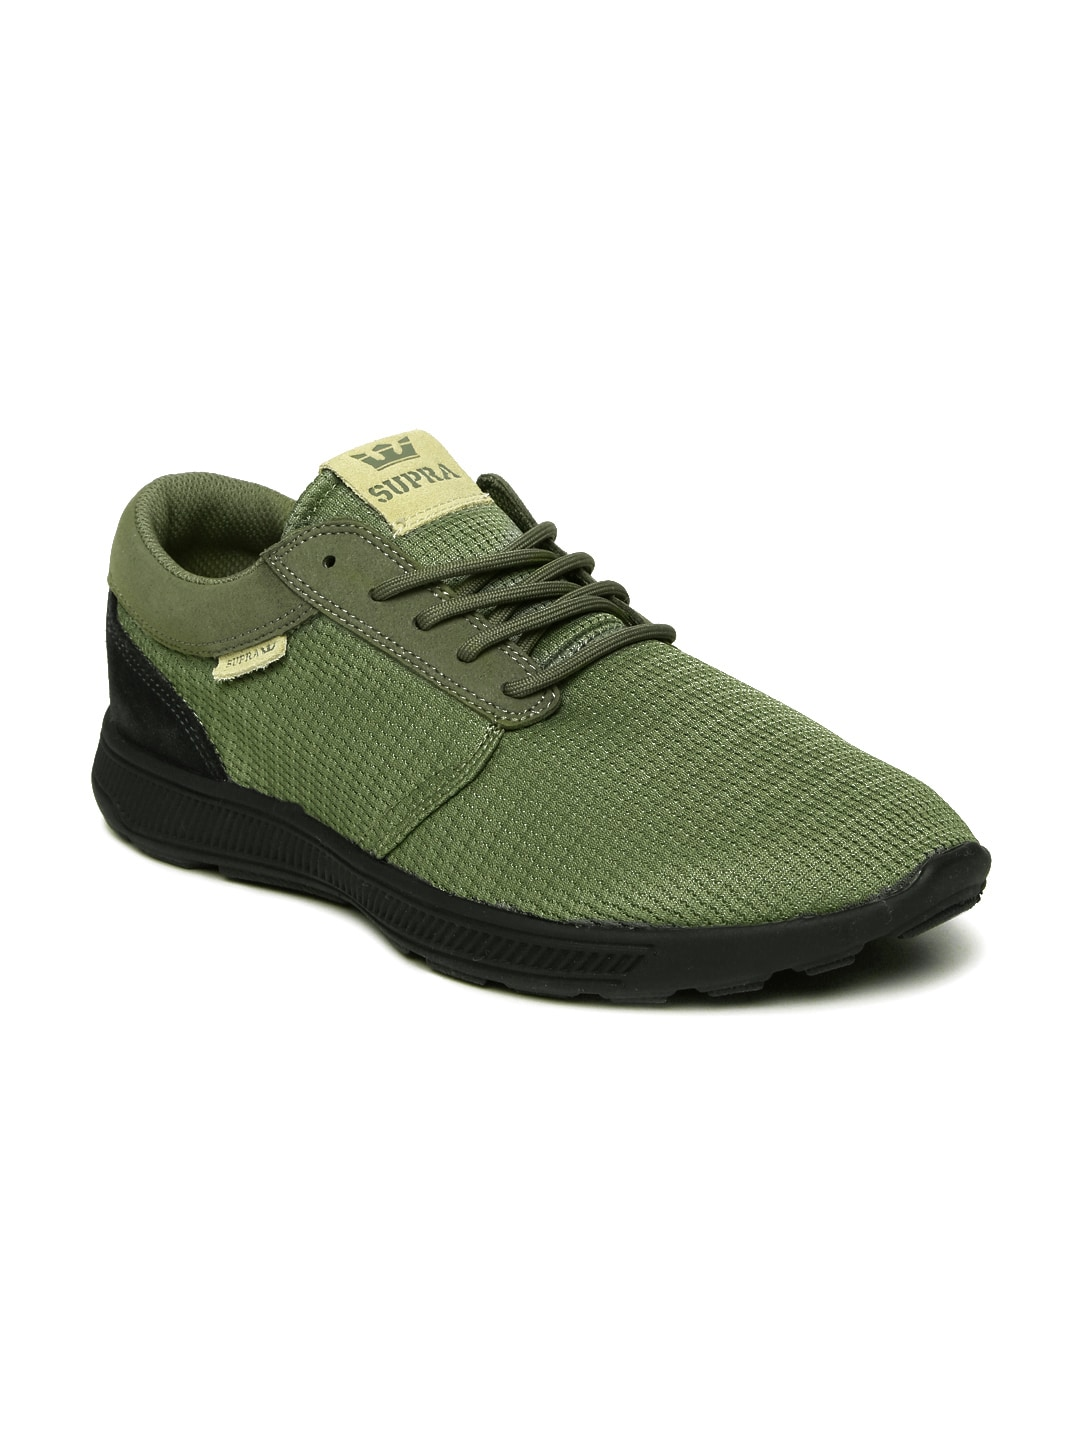 27416729c0b5 Supra Olive Casual Shoes - Buy Supra Olive Casual Shoes online in India